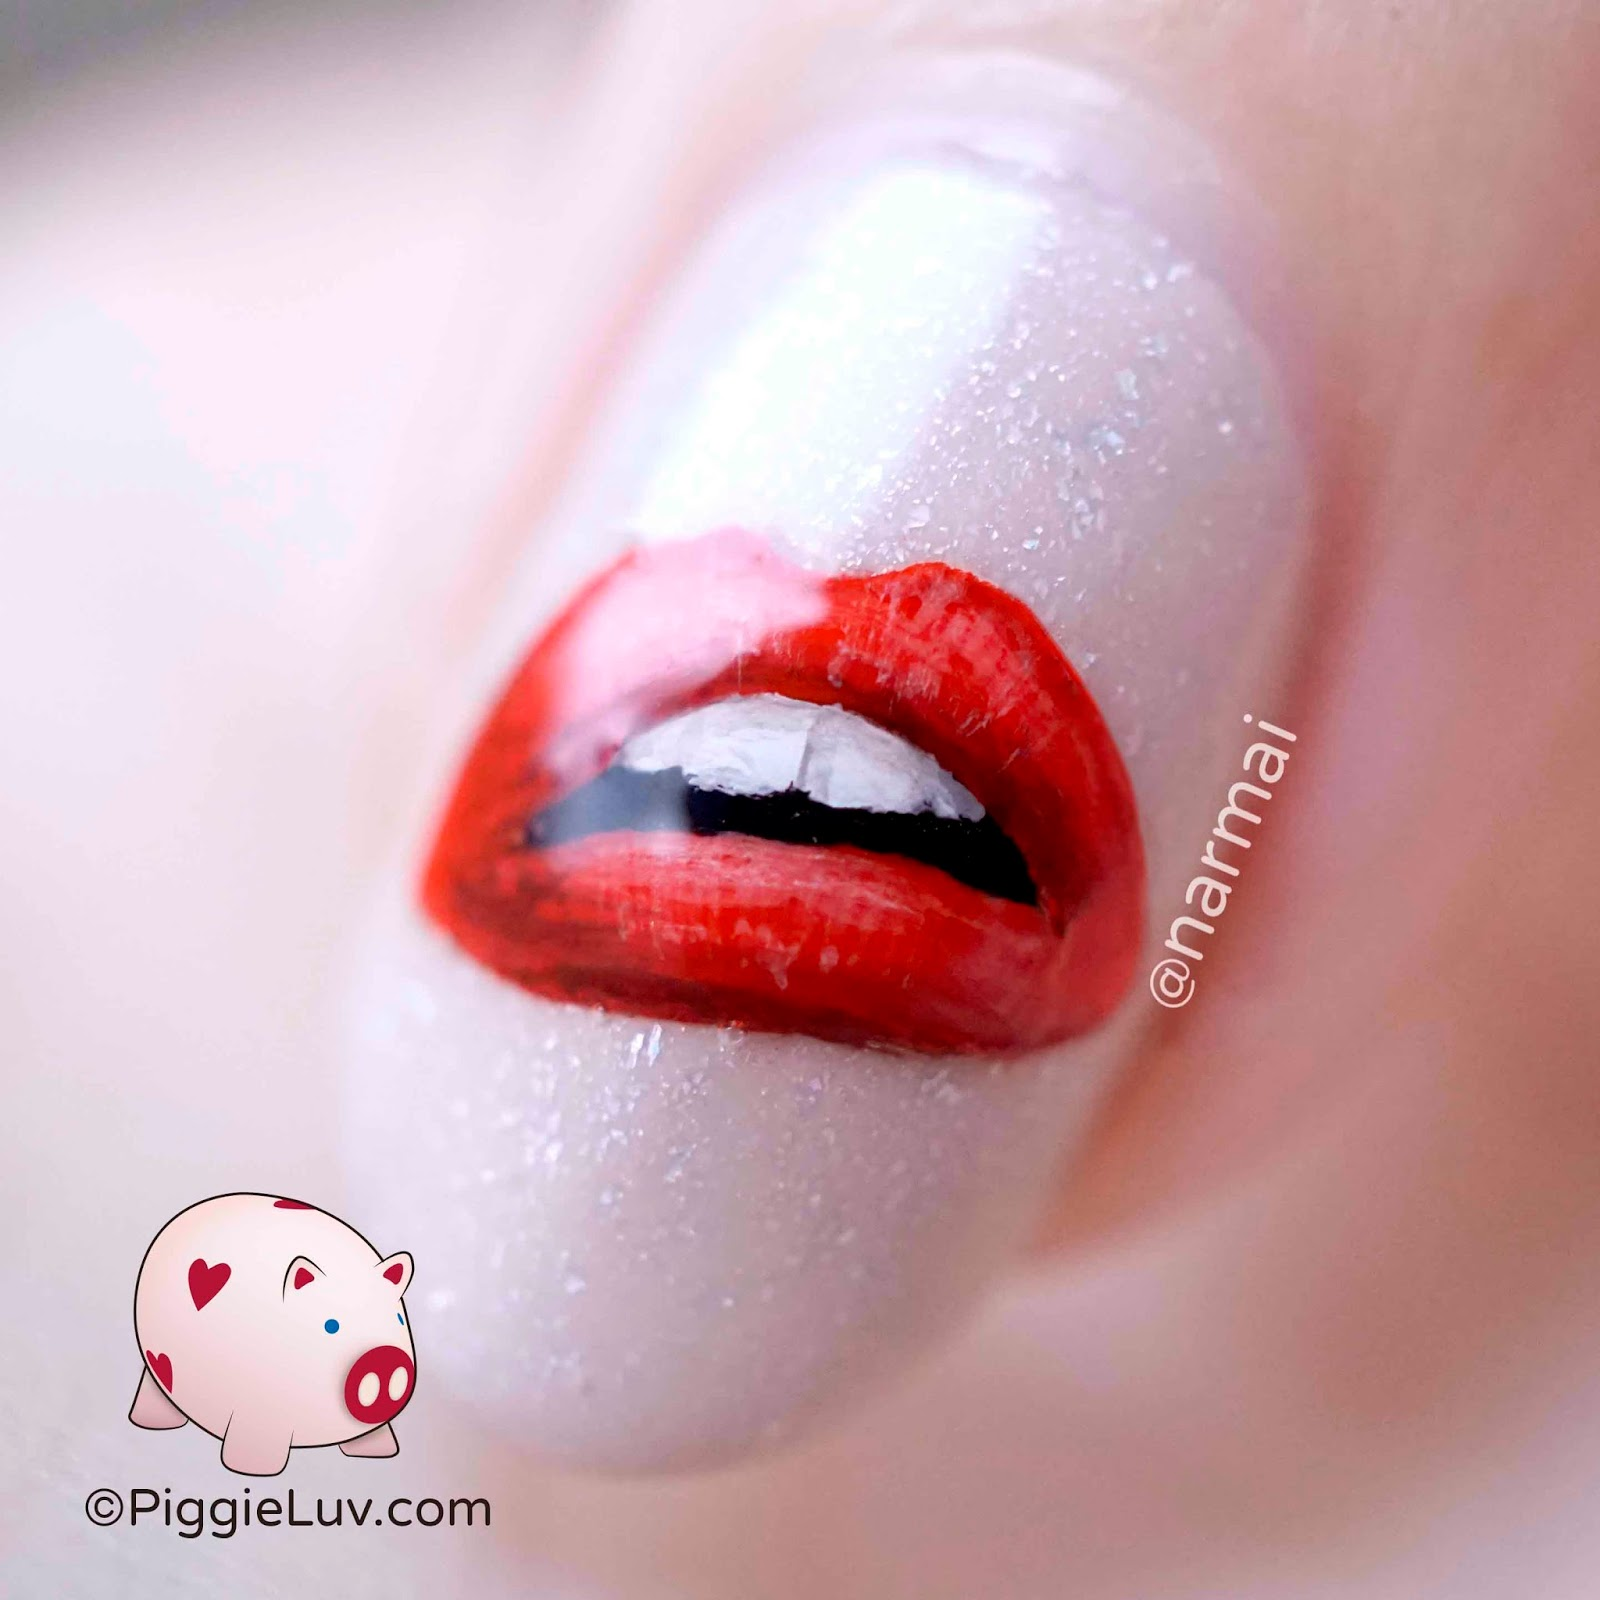 Piggieluv hot lips nail art for valentines day i used ilnp stopping traffic that i got from nailland hungary on all the nails and picture polish cherish on the accent nail the lips are painted with prinsesfo Image collections